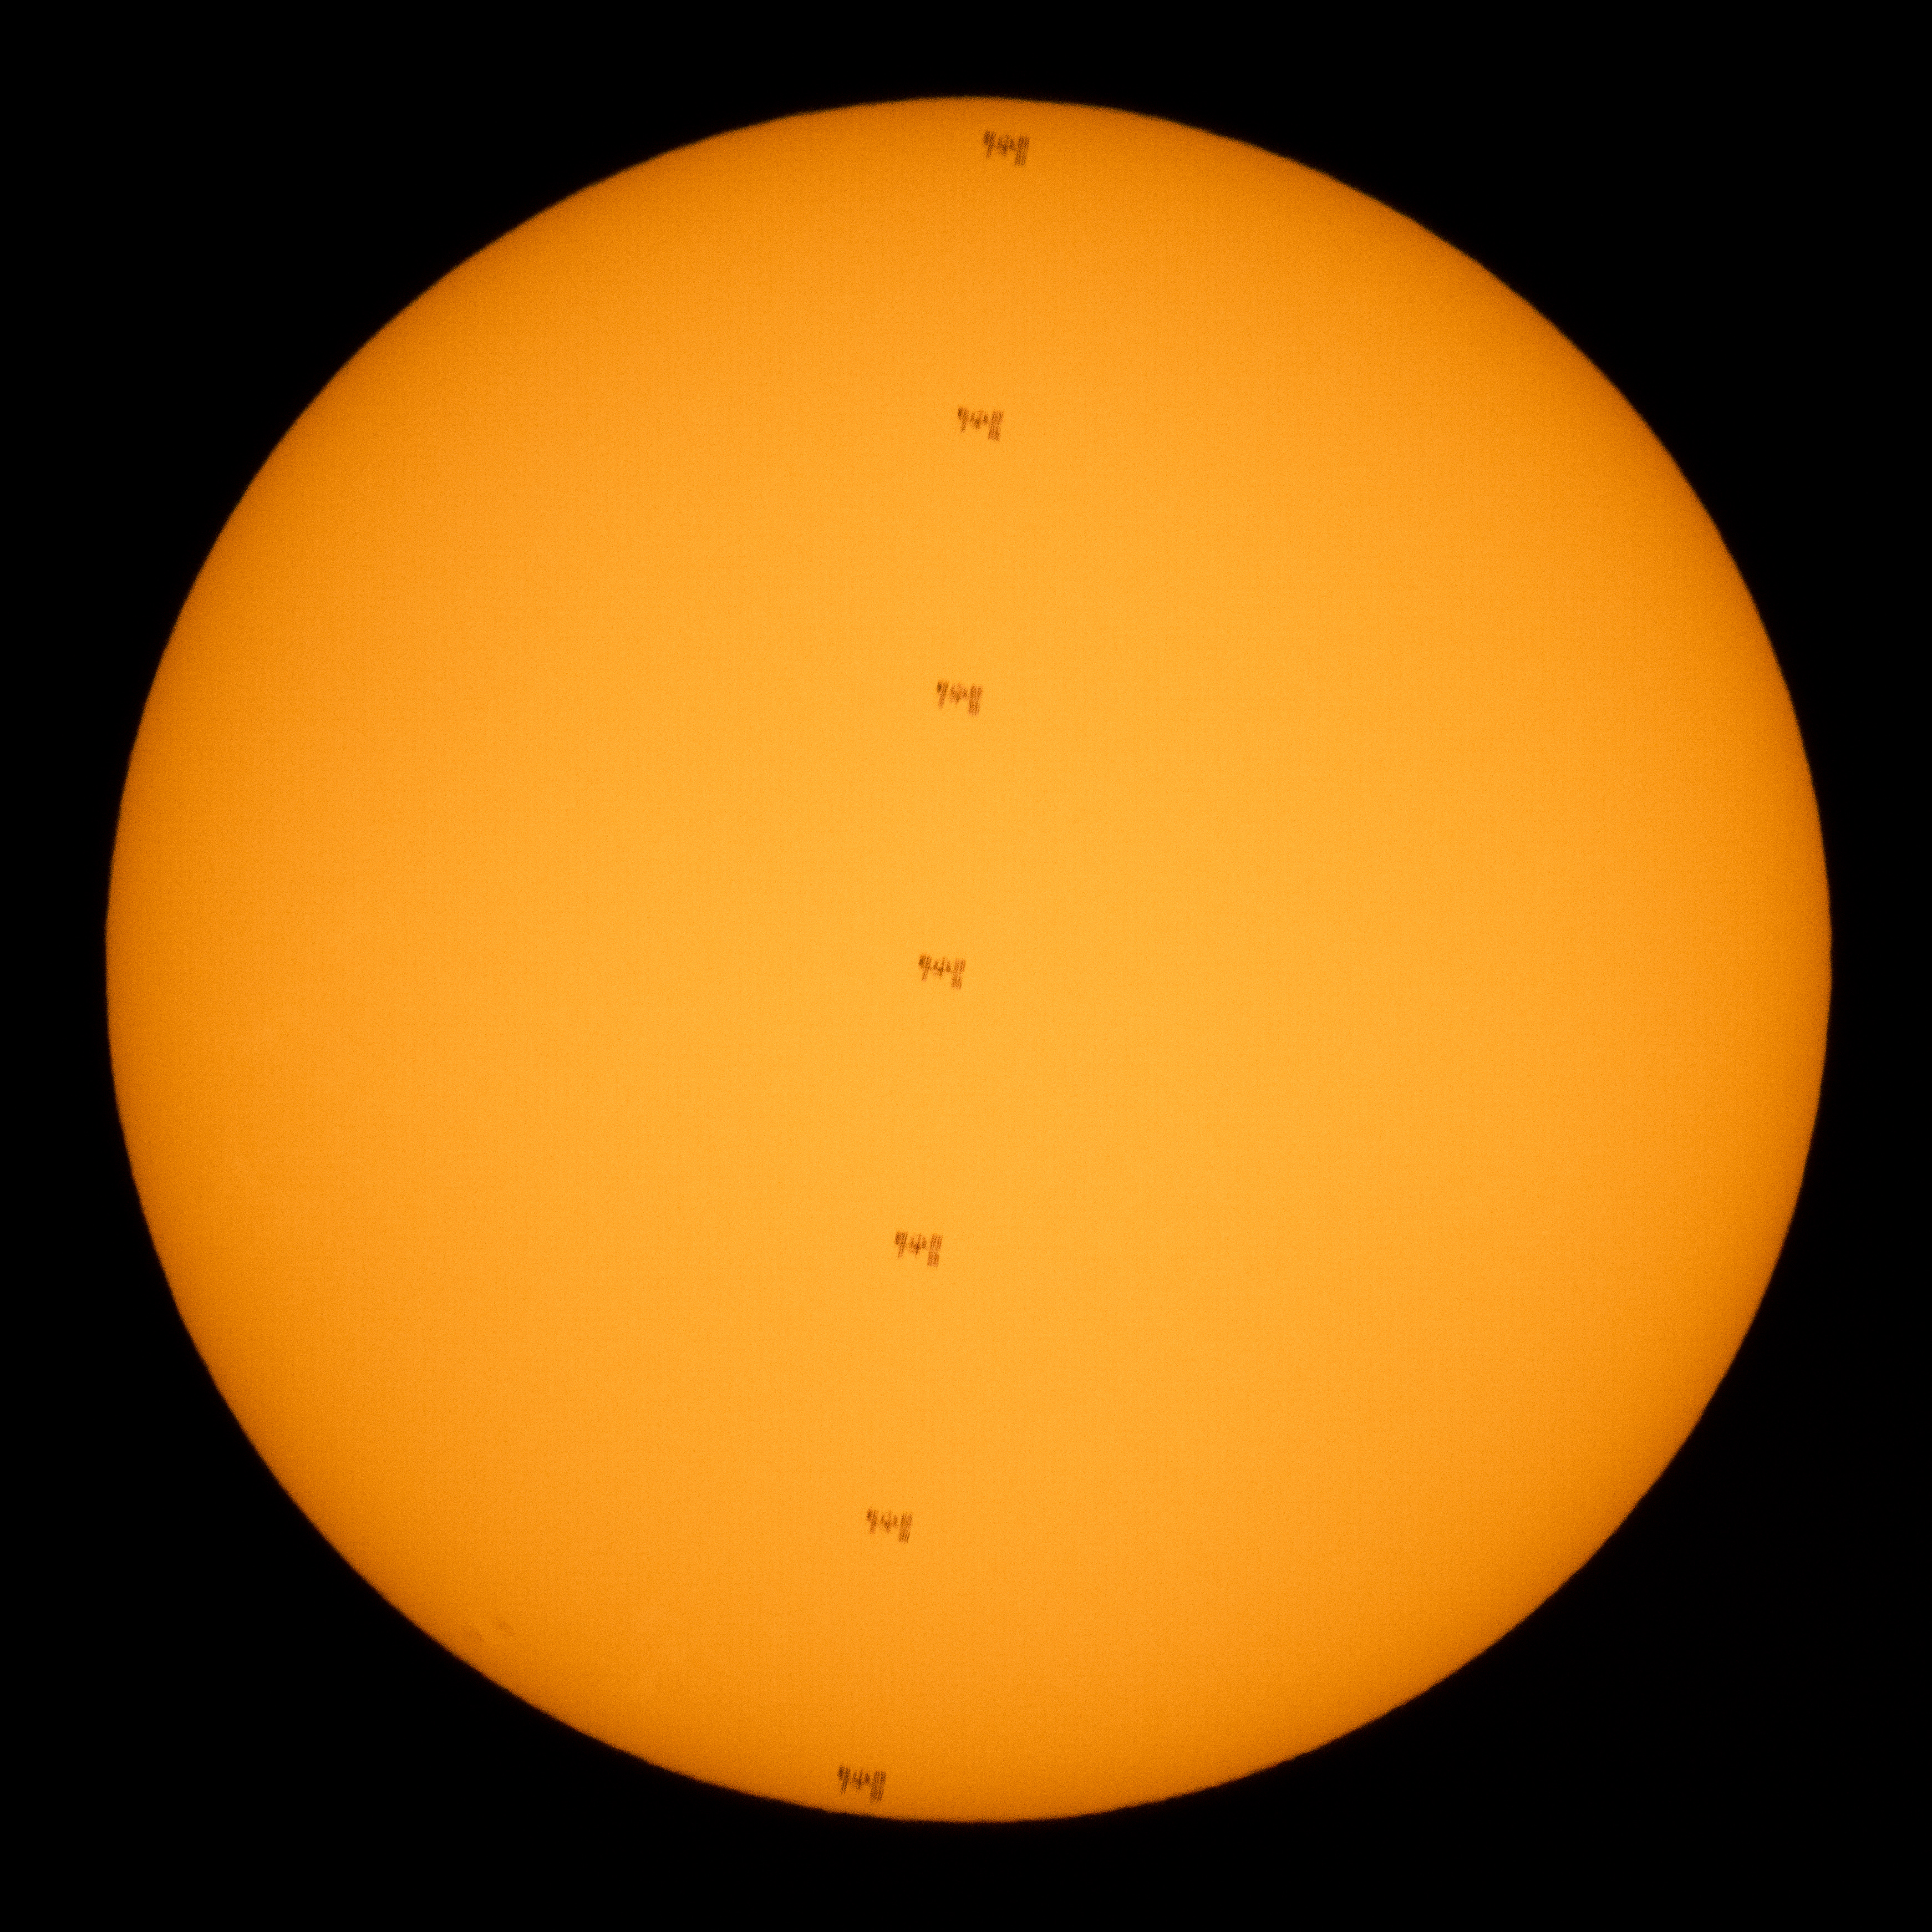 Space Station Transits the Sun